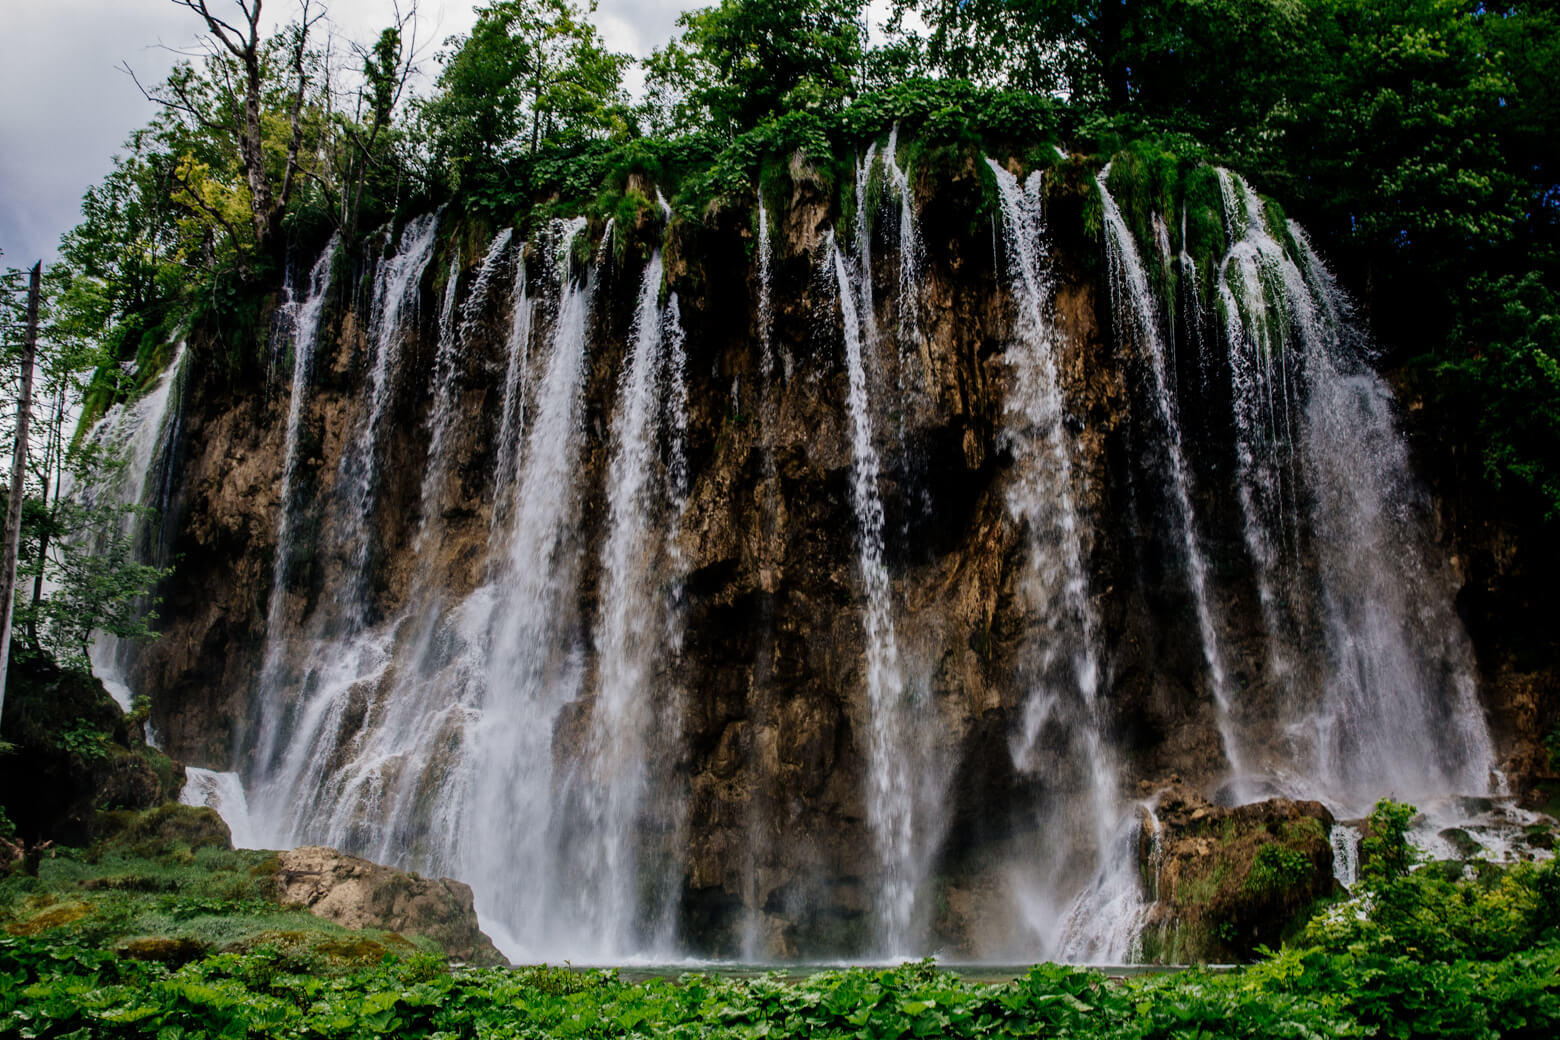 Waterfall at Plitvice in Croatia